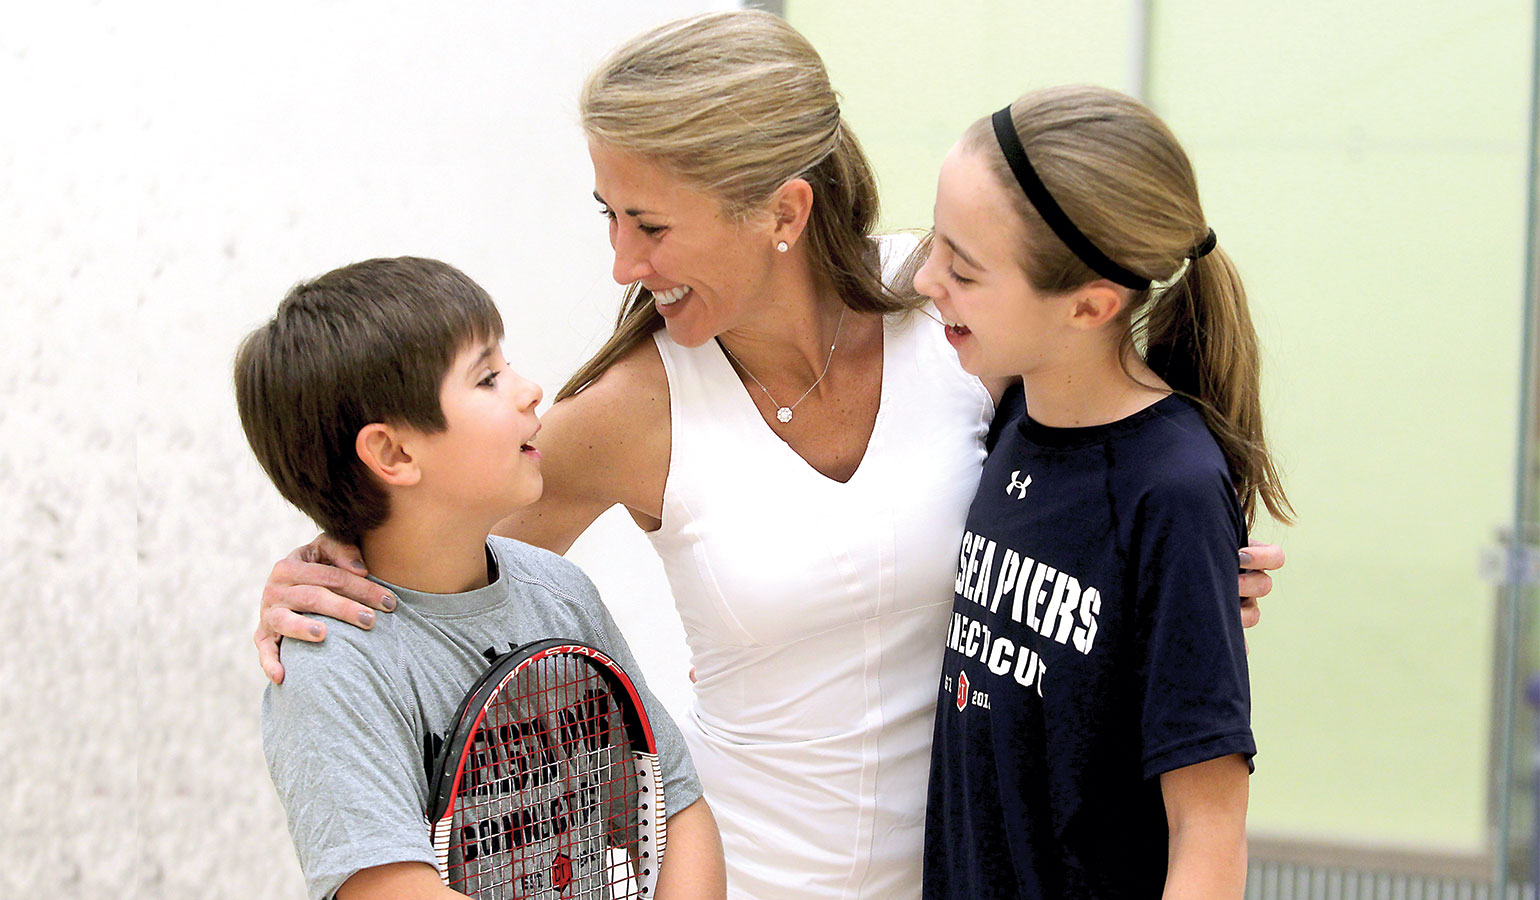 Family hugging after a squash match at Chelsea Piers